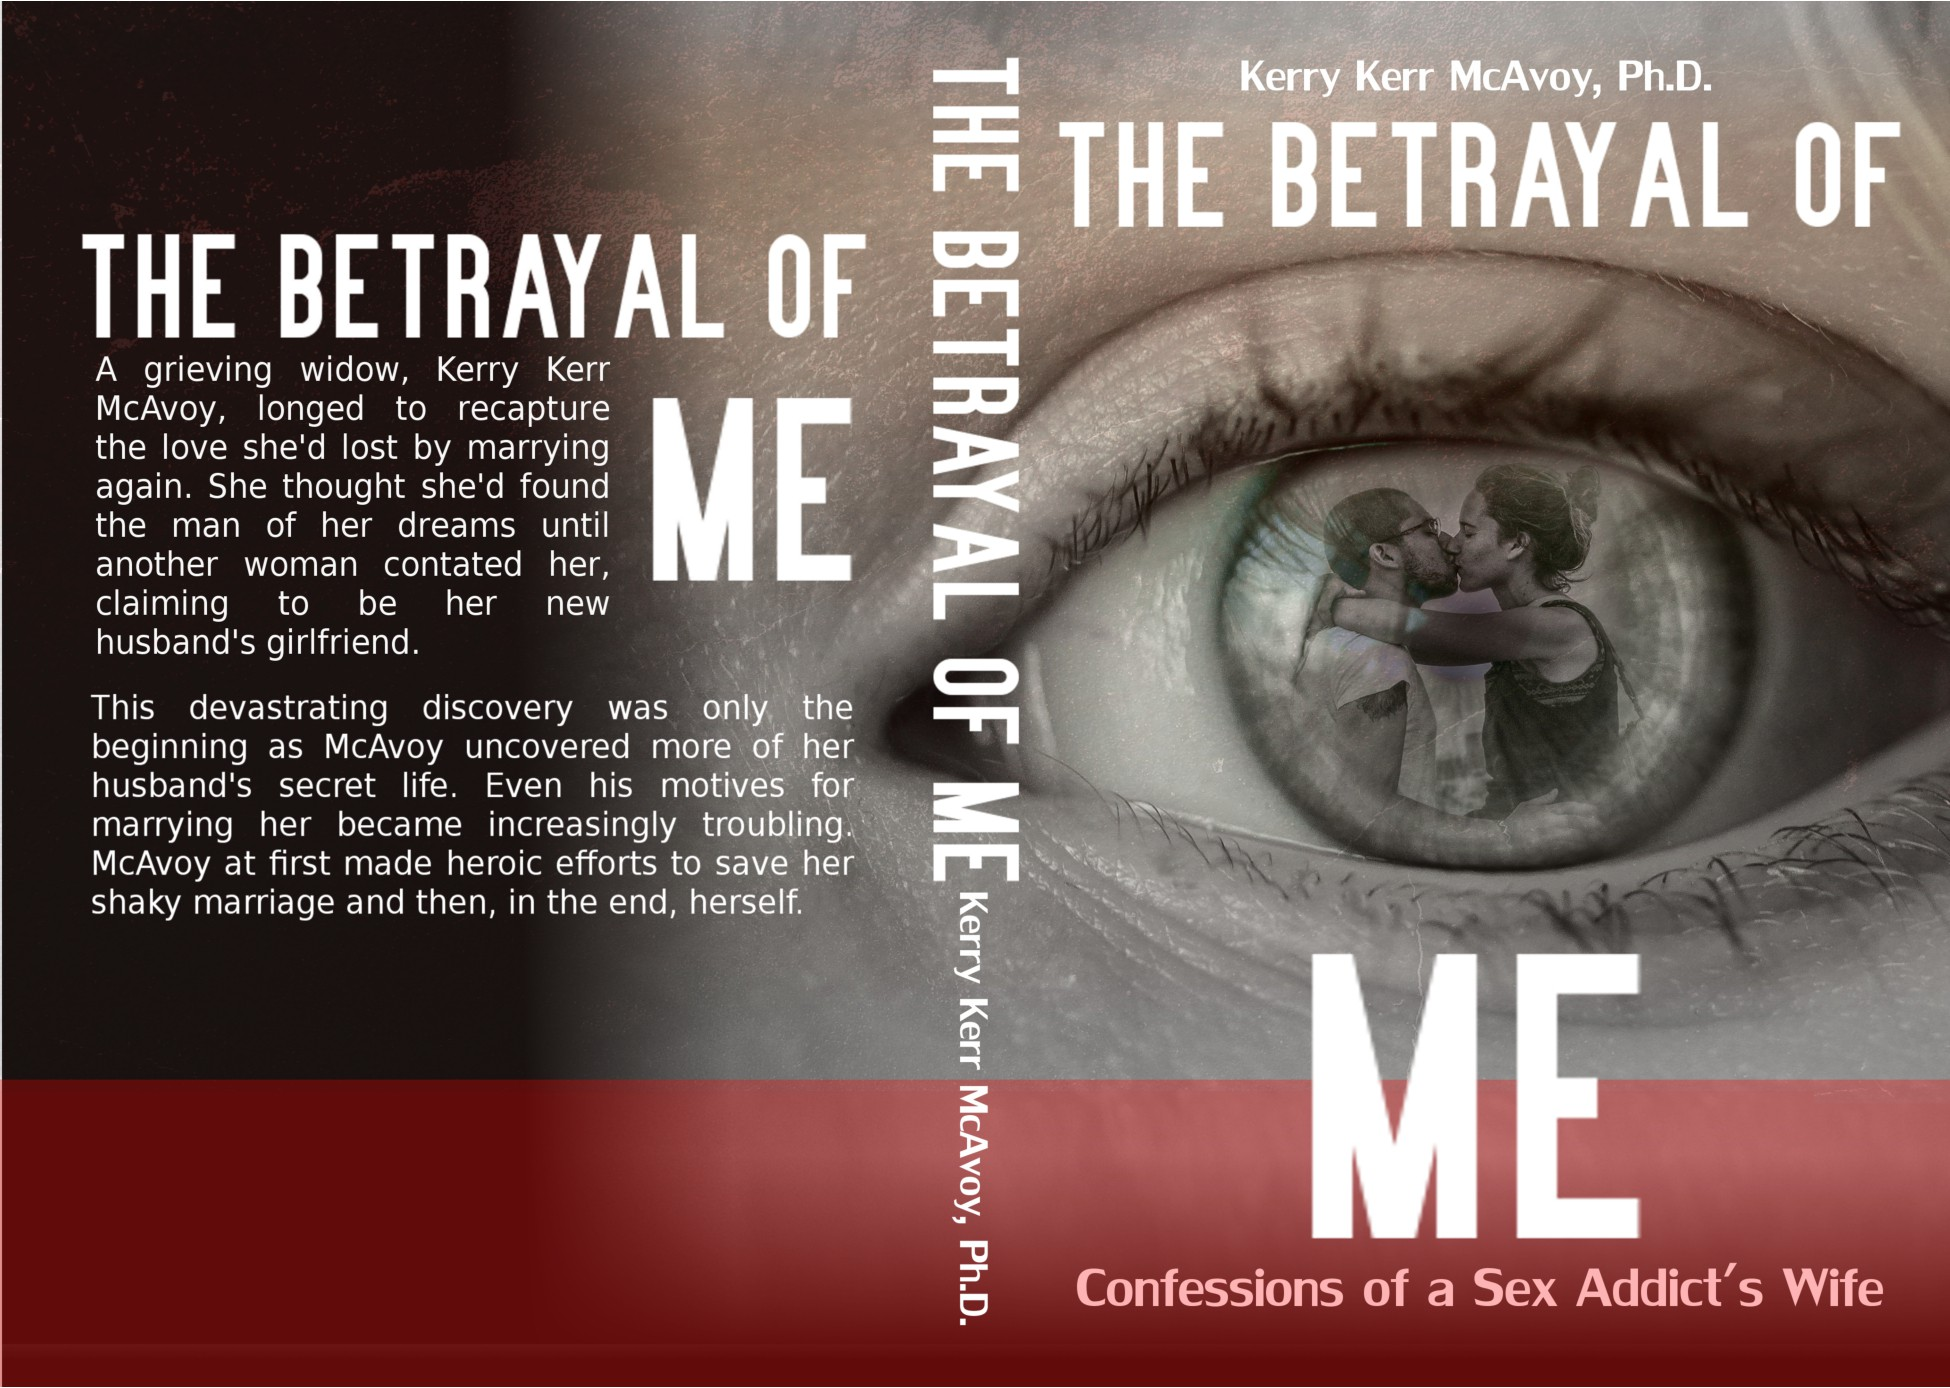 Design sexy book cover for upcoming tell-all memoir